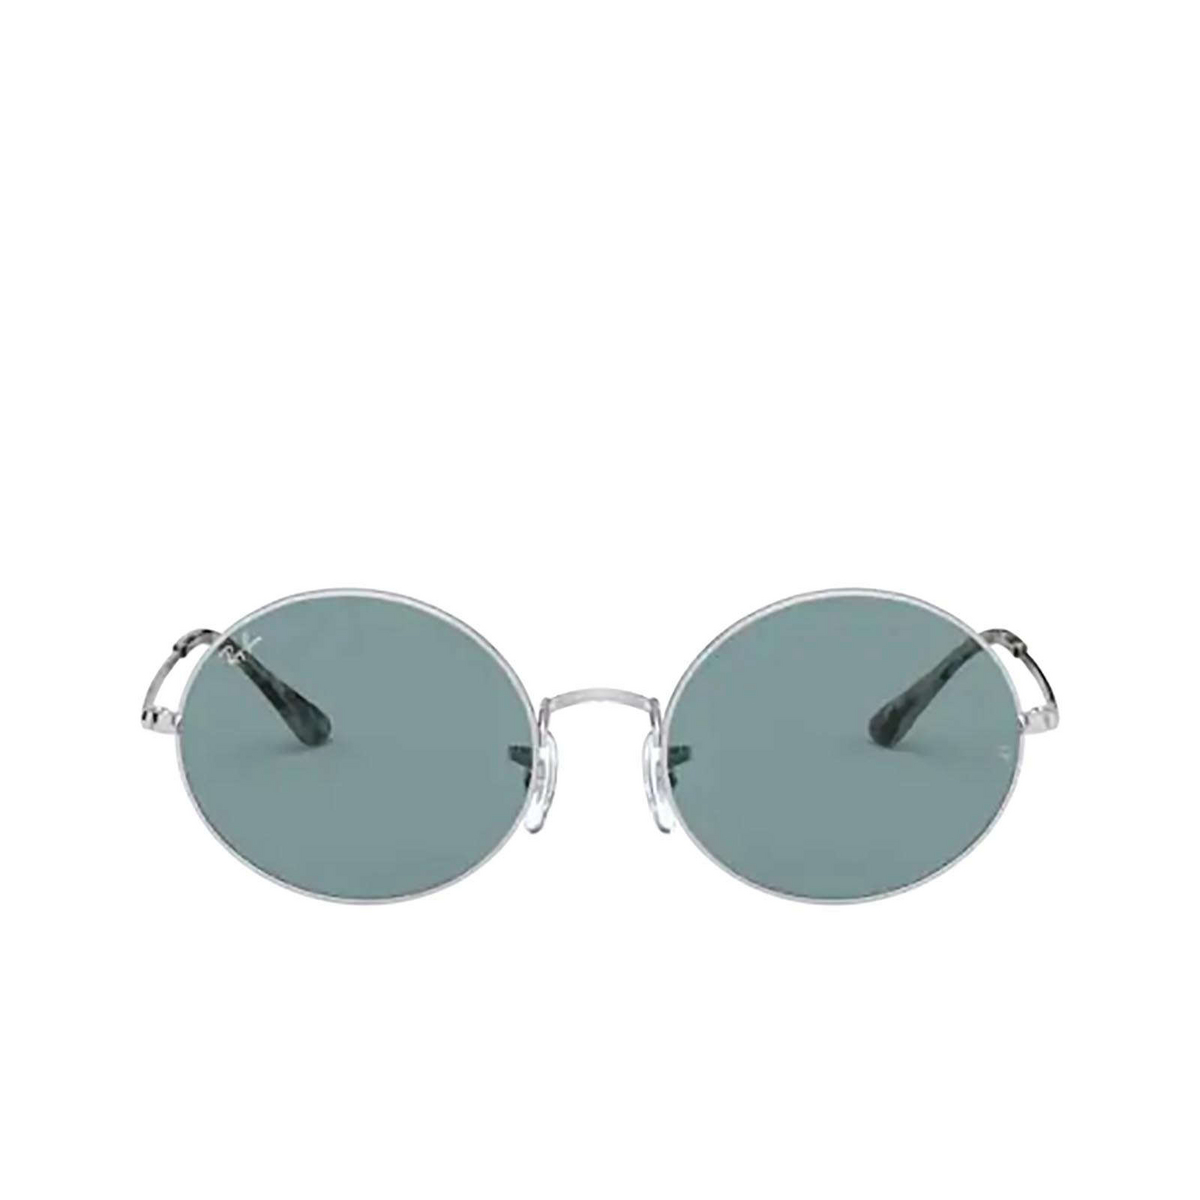 Ray-Ban® Oval Sunglasses: Oval RB1970 color Silver 919756 - front view.